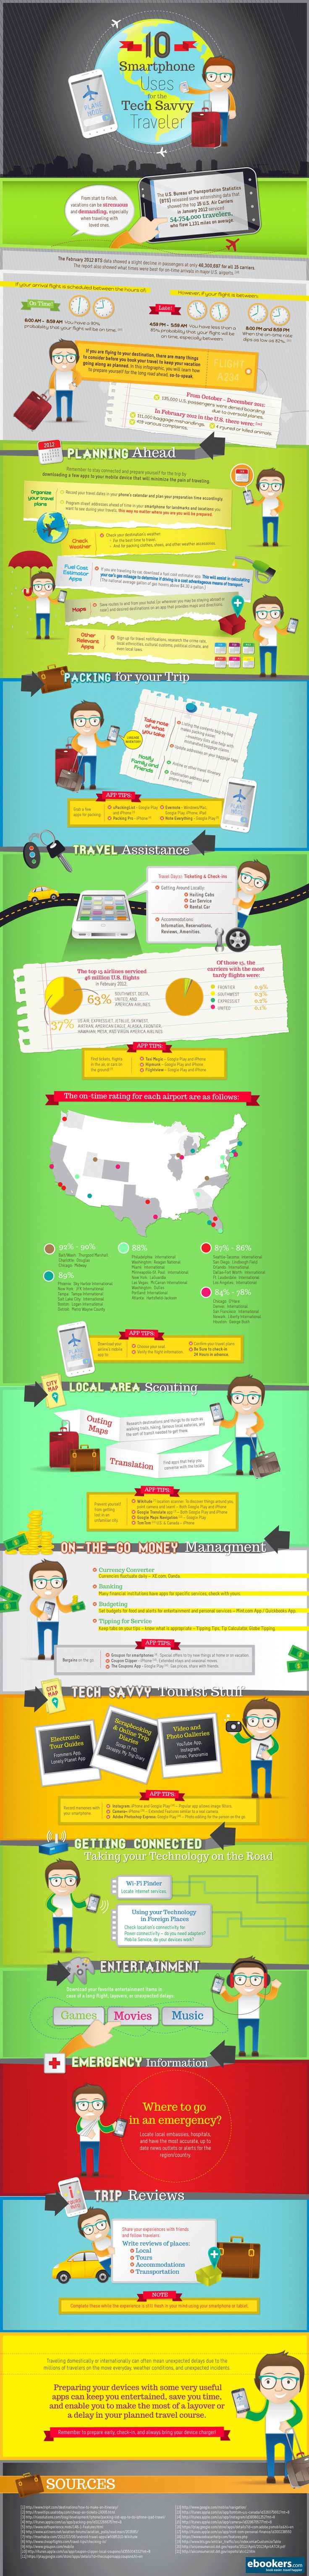 10 smartphone uses for the traveler  #infographic